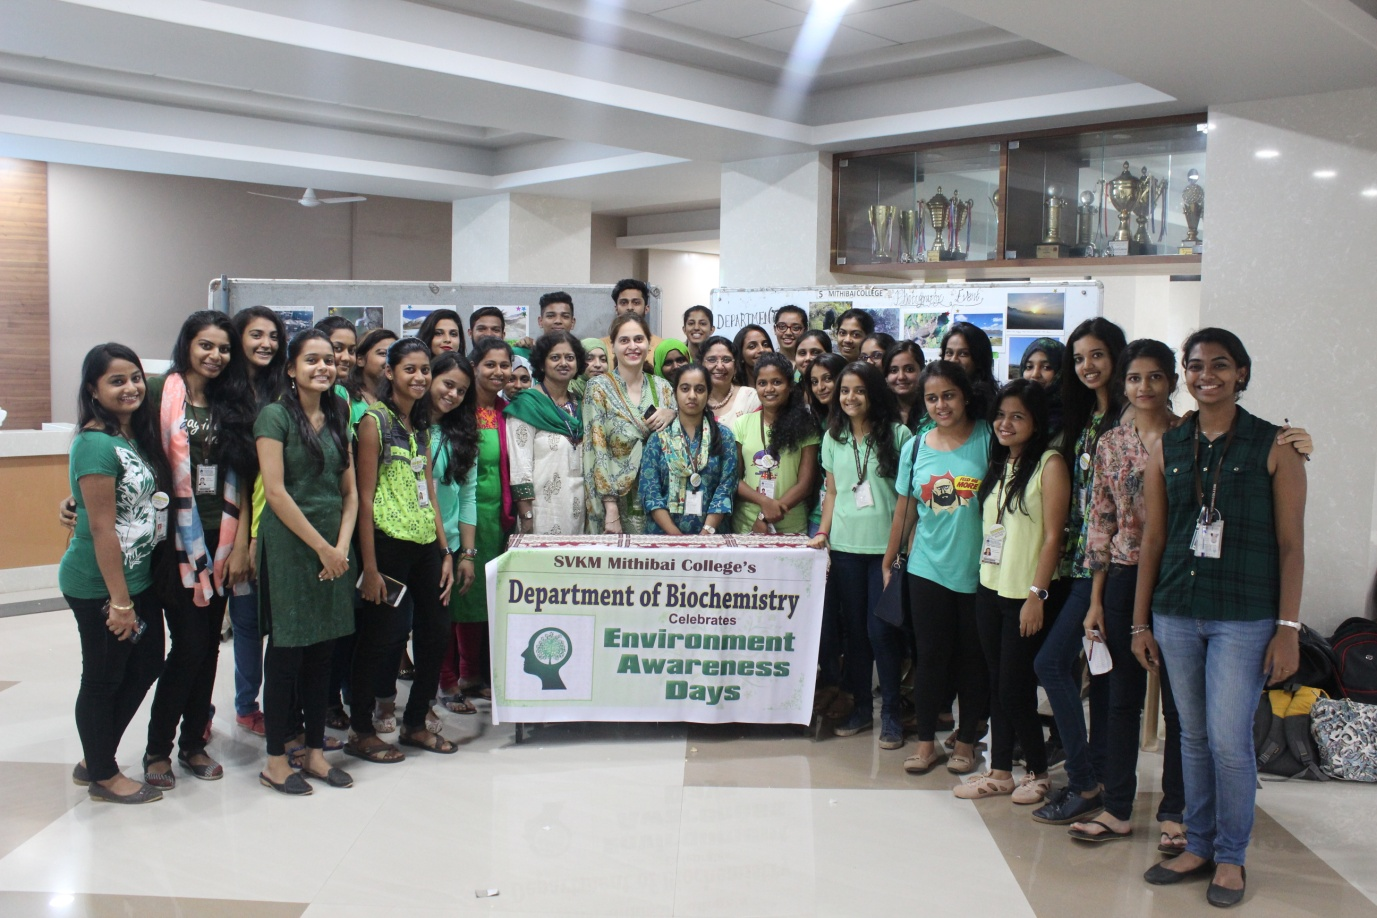 The Staff and Students of Mithibai College celebra